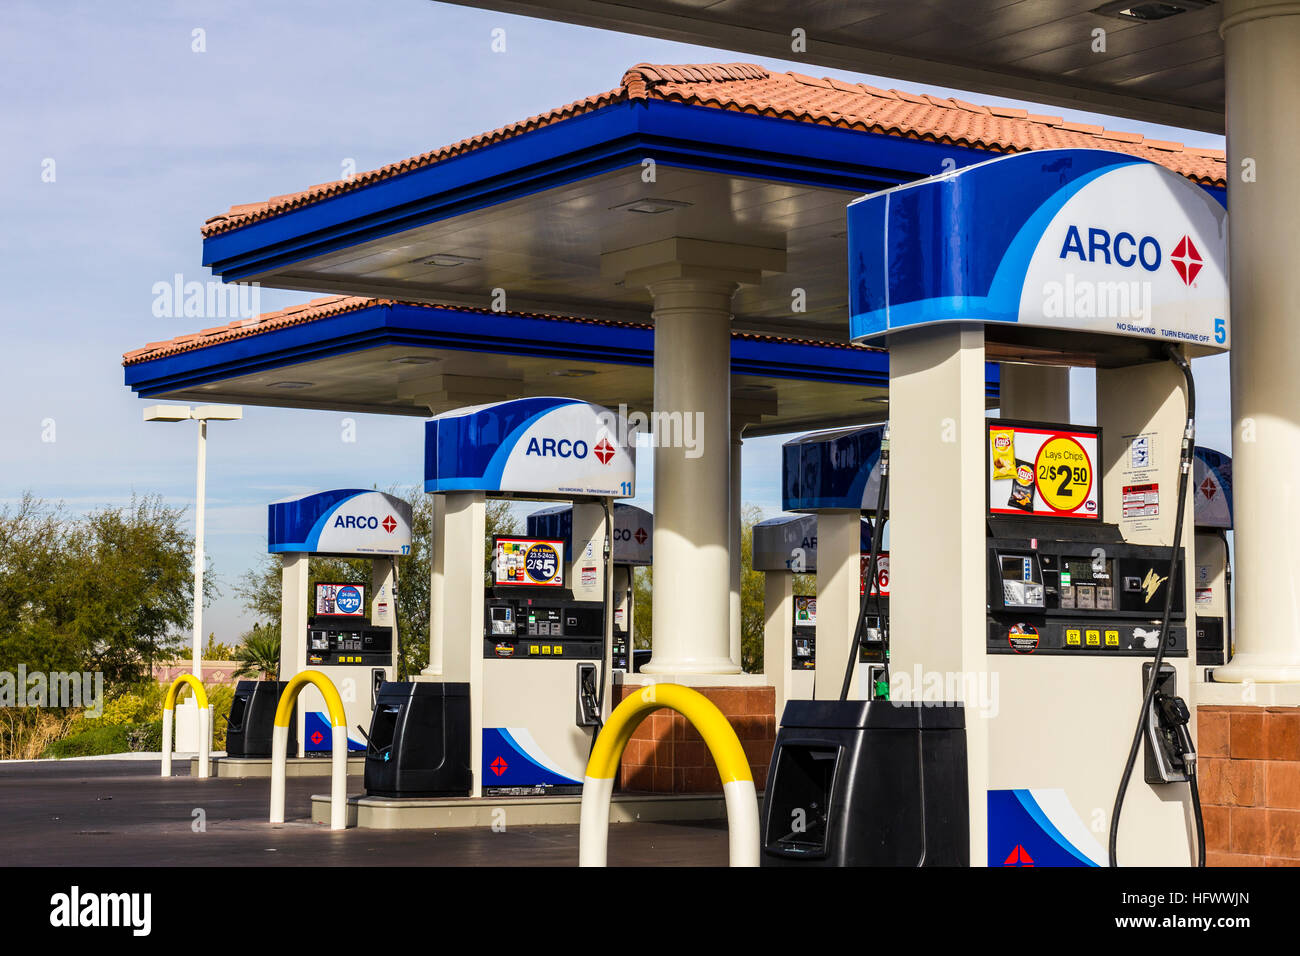 Las Vegas - Circa December 2016: ARCO Retail Gas Station. ARCO is part of the Tesoro Corporation I Stock Photo